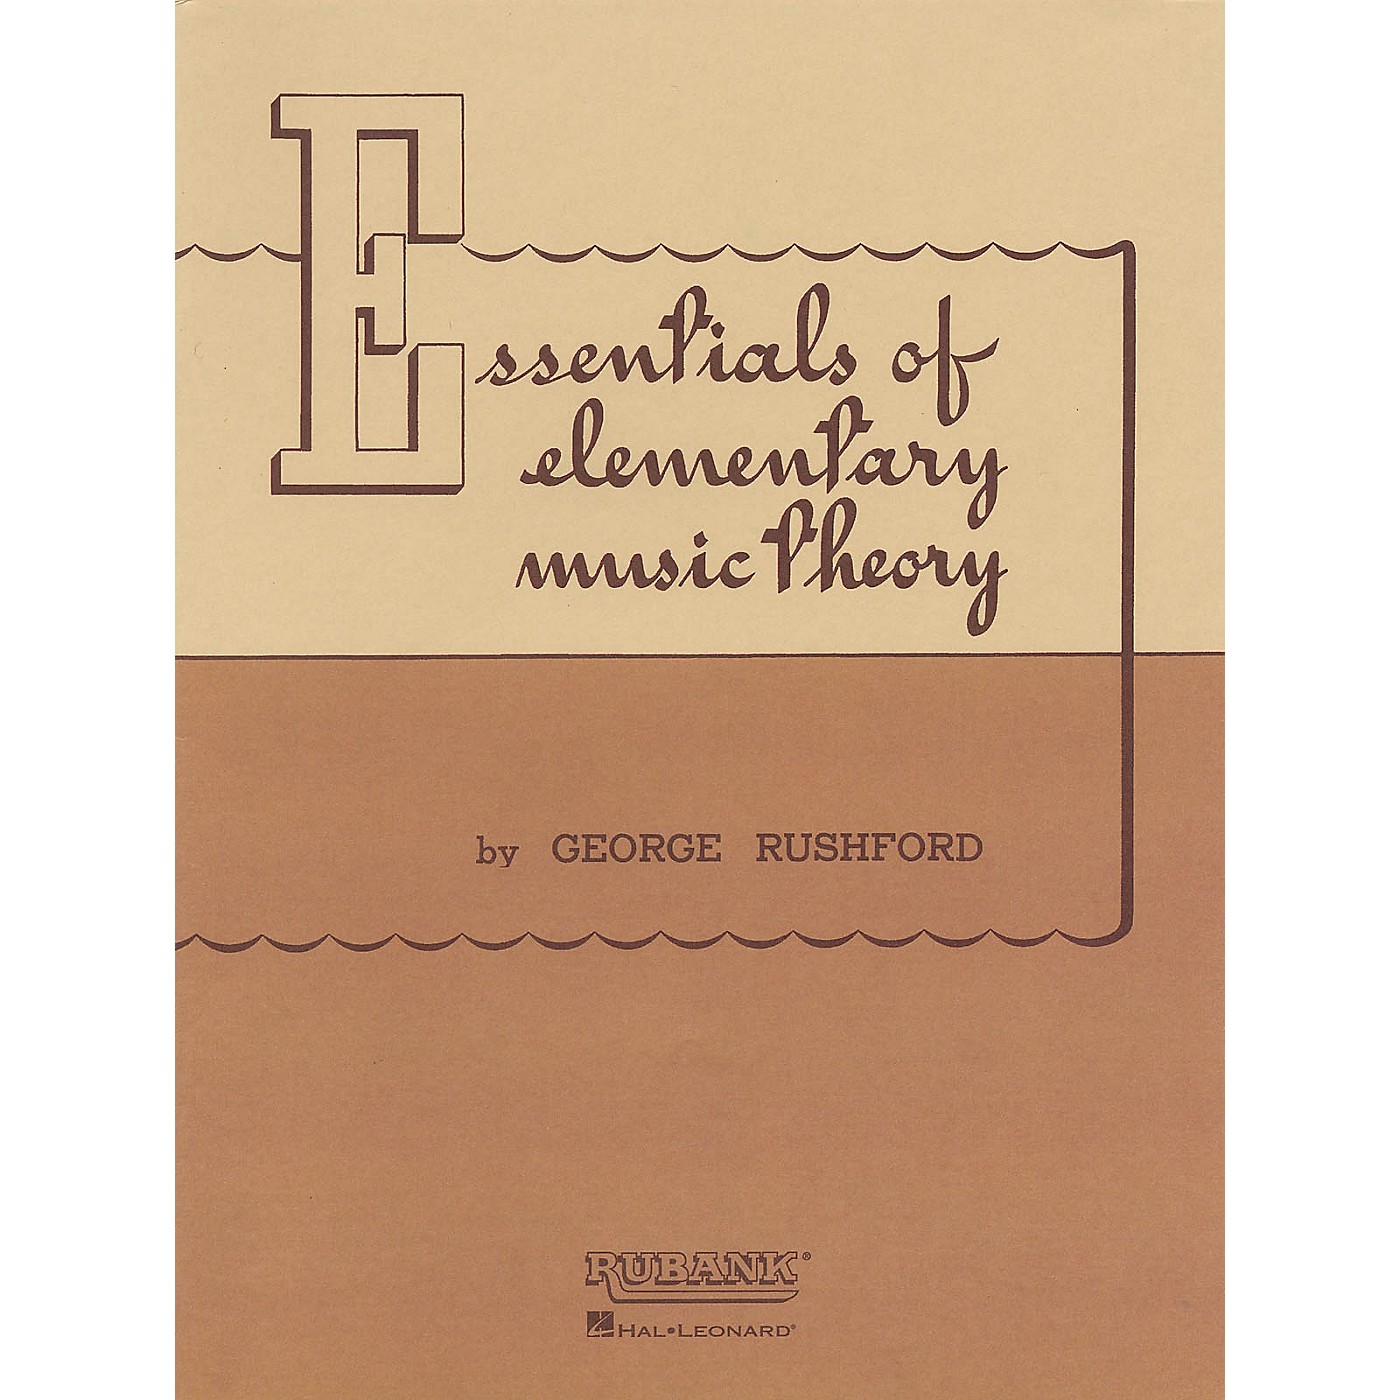 Rubank Publications Essentials of Elementary Music Theory Method Series thumbnail